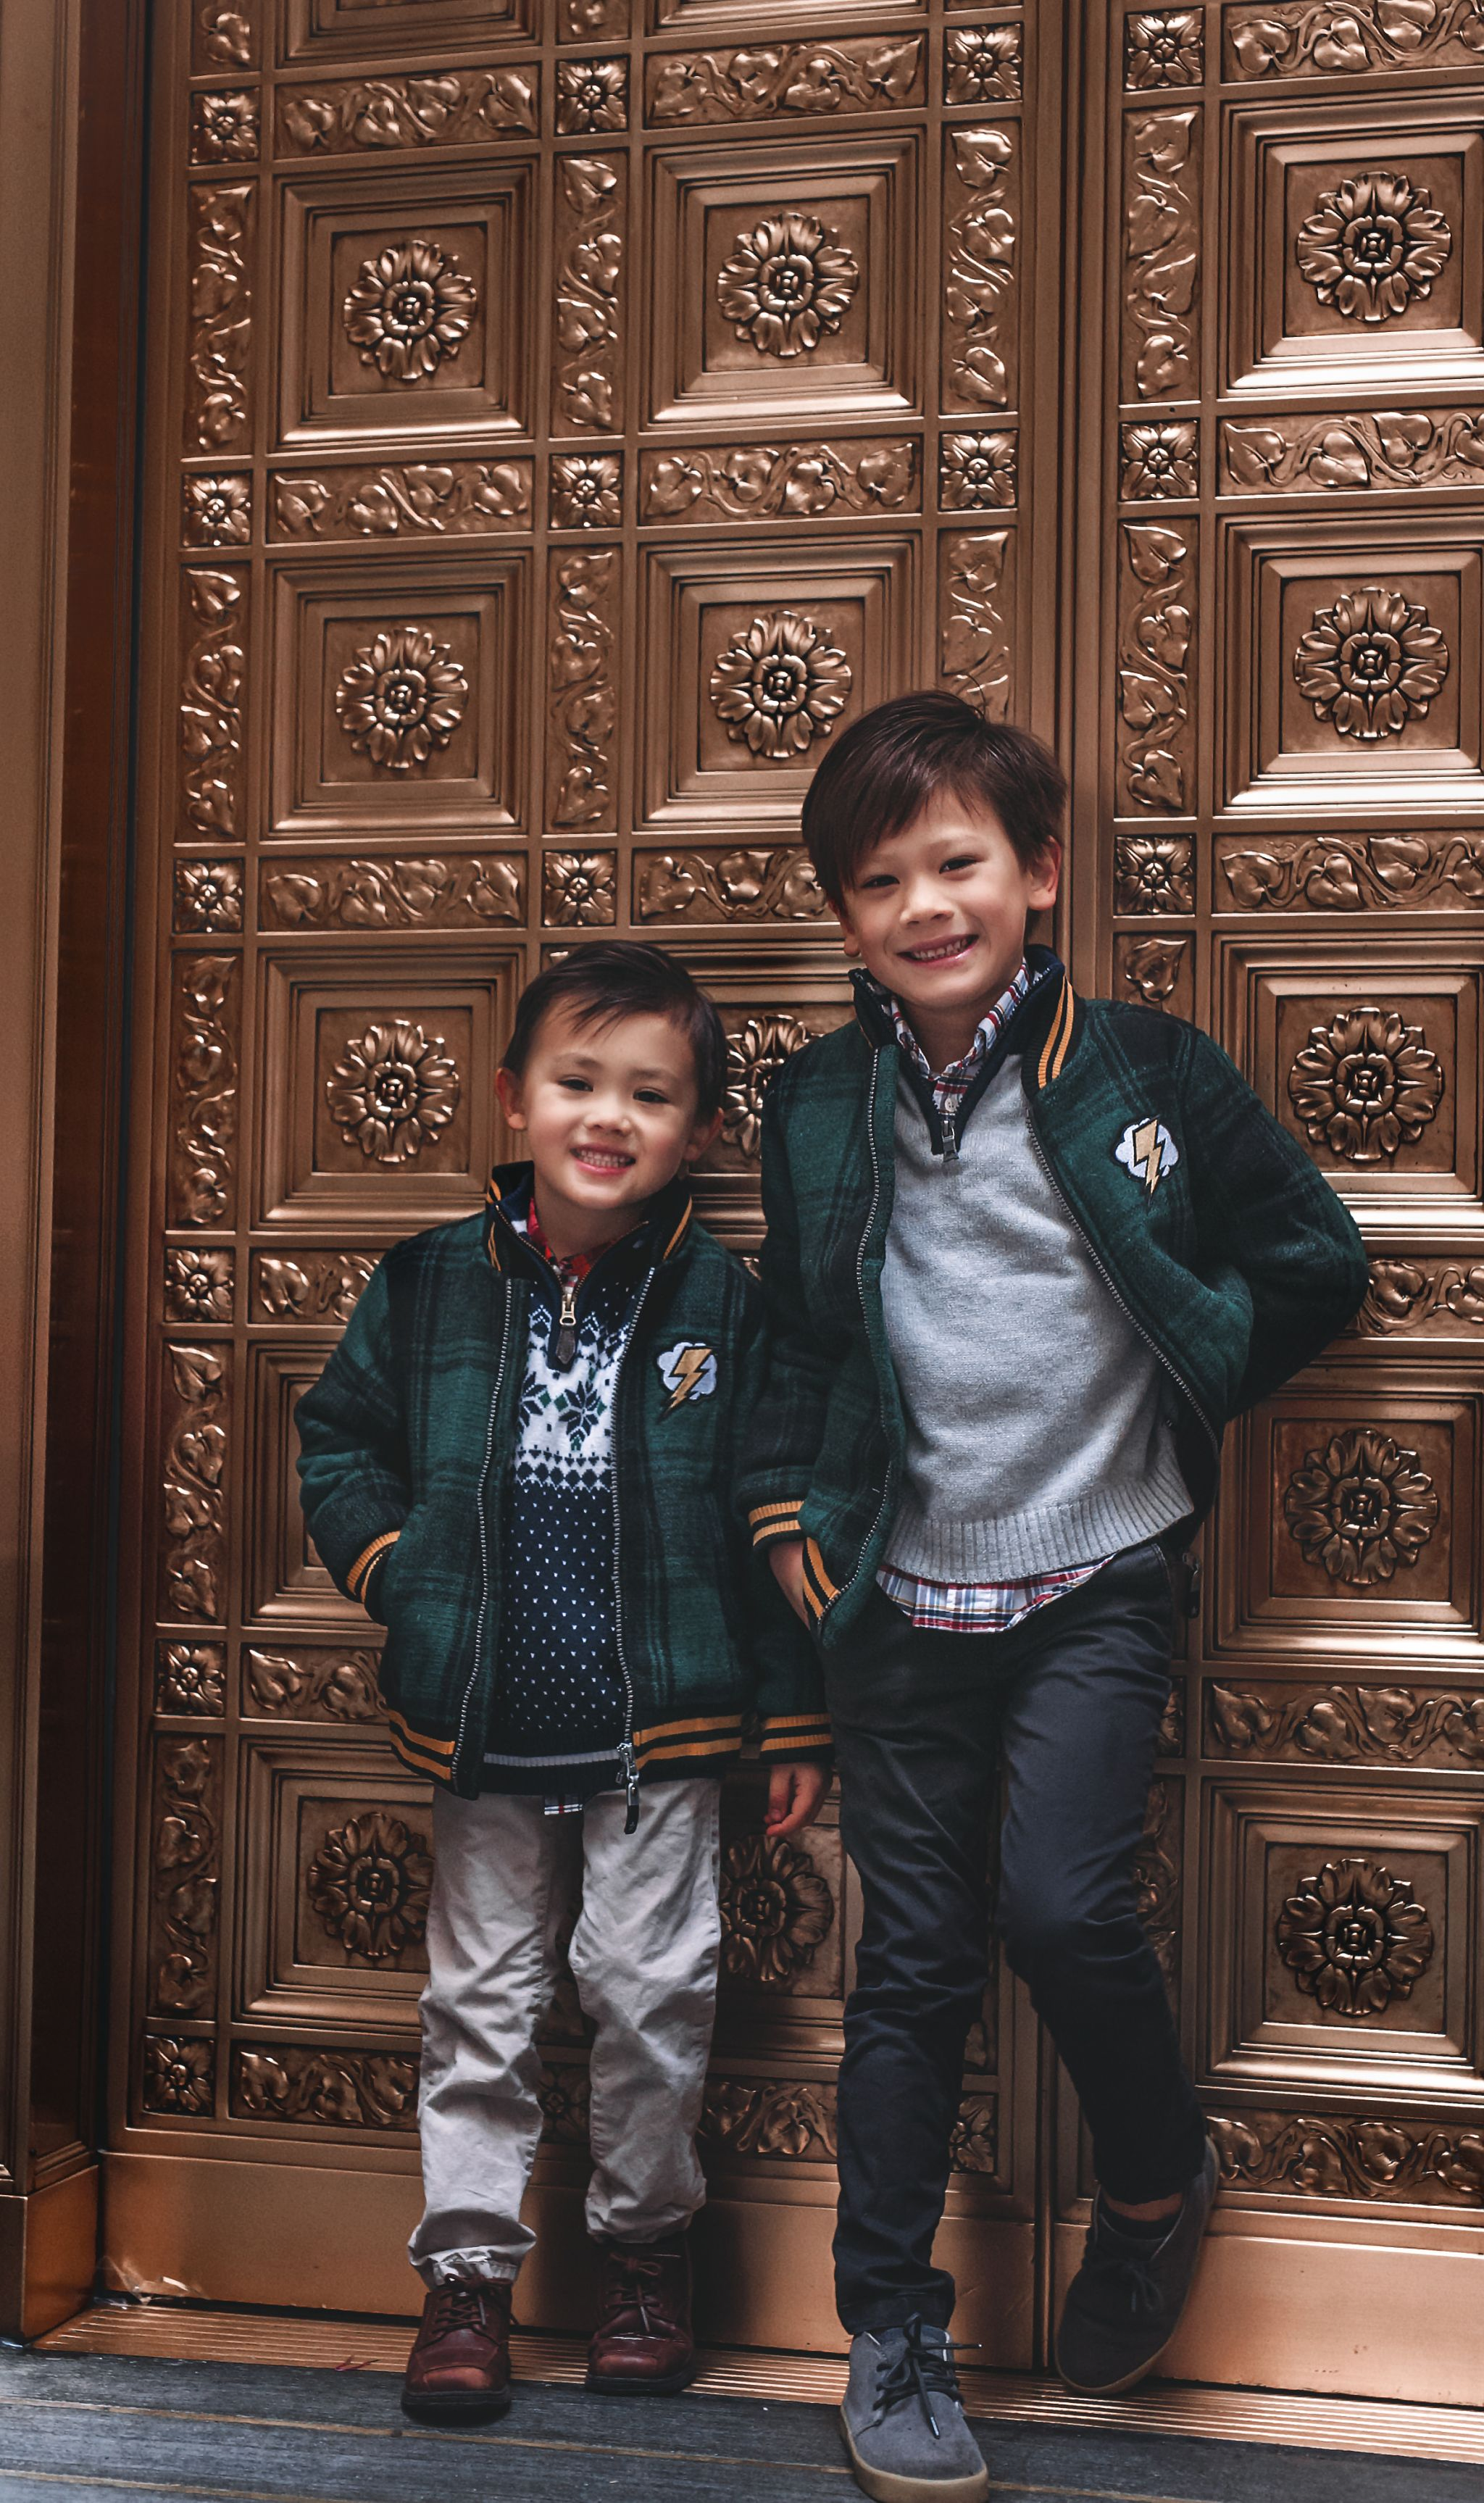 Best chicago photographer, Best Family photographer, kids photography, kids chicago photograhy, lola and the boys jackets, jennifer worman